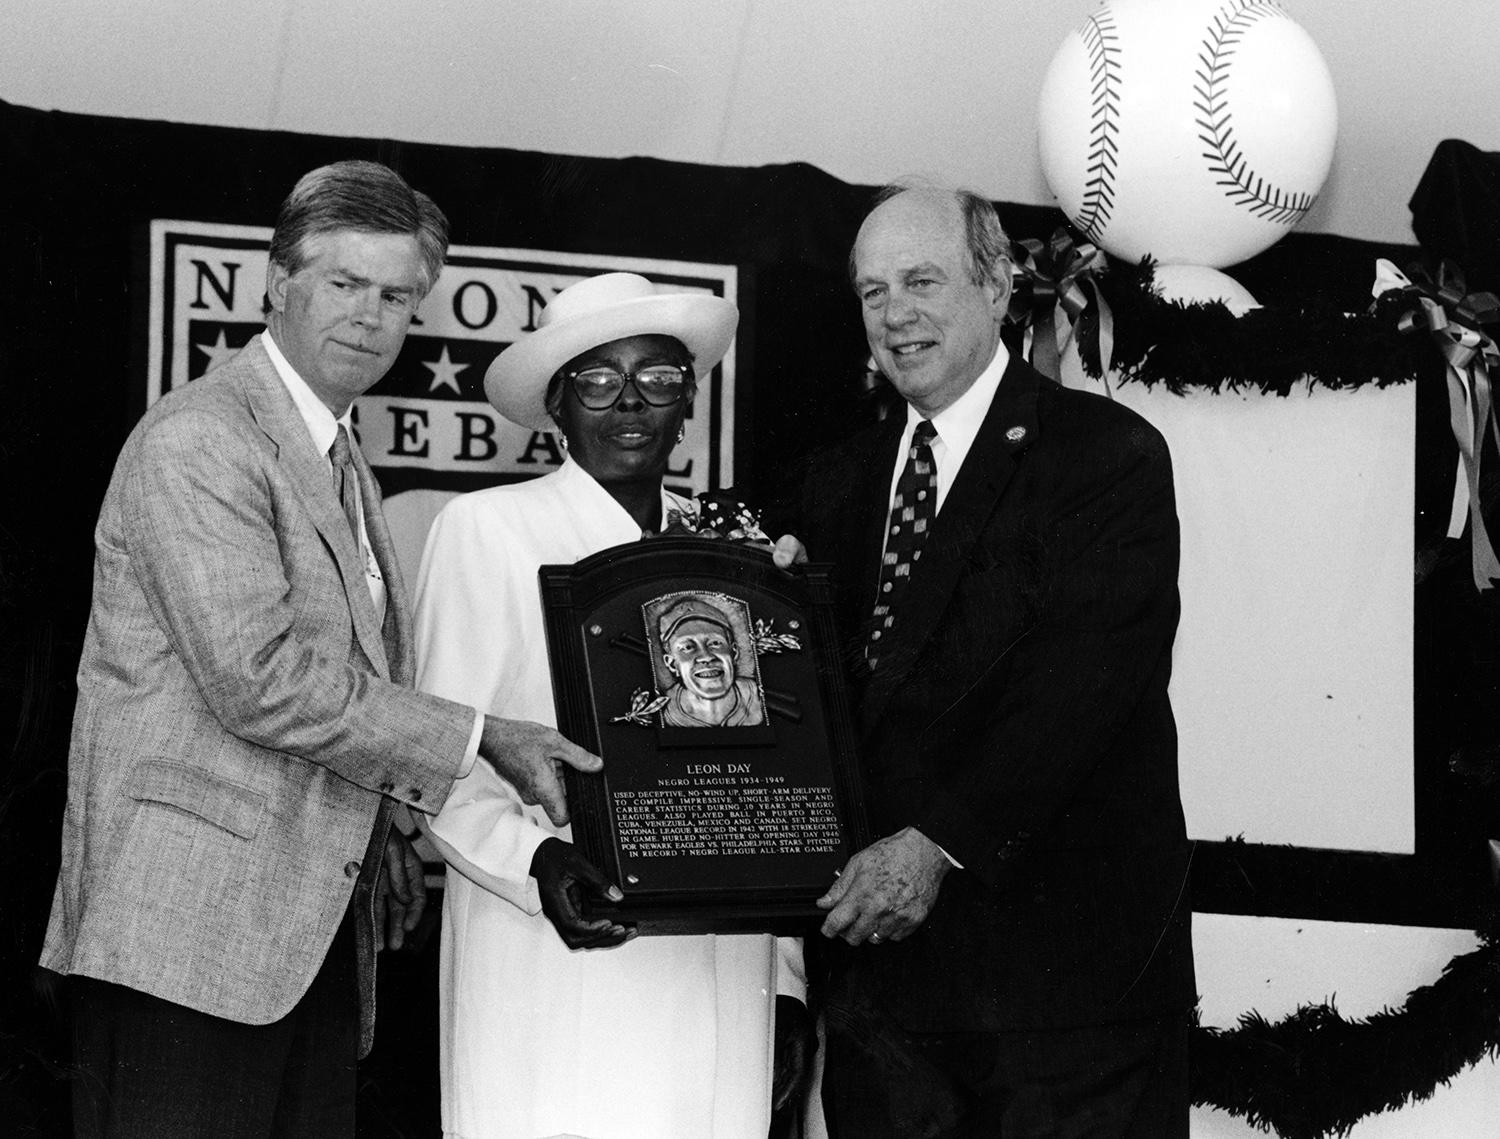 Leon Day was inducted posthumously in to the Hall of Fame in 1995. Pictured above, his wife Geraldine holds his plaque (center) standing alongside former Hall of Fame President Don Marr (left) and former Chairman of the Board Ed Stack. (National Baseball Hall of Fame and Museum)